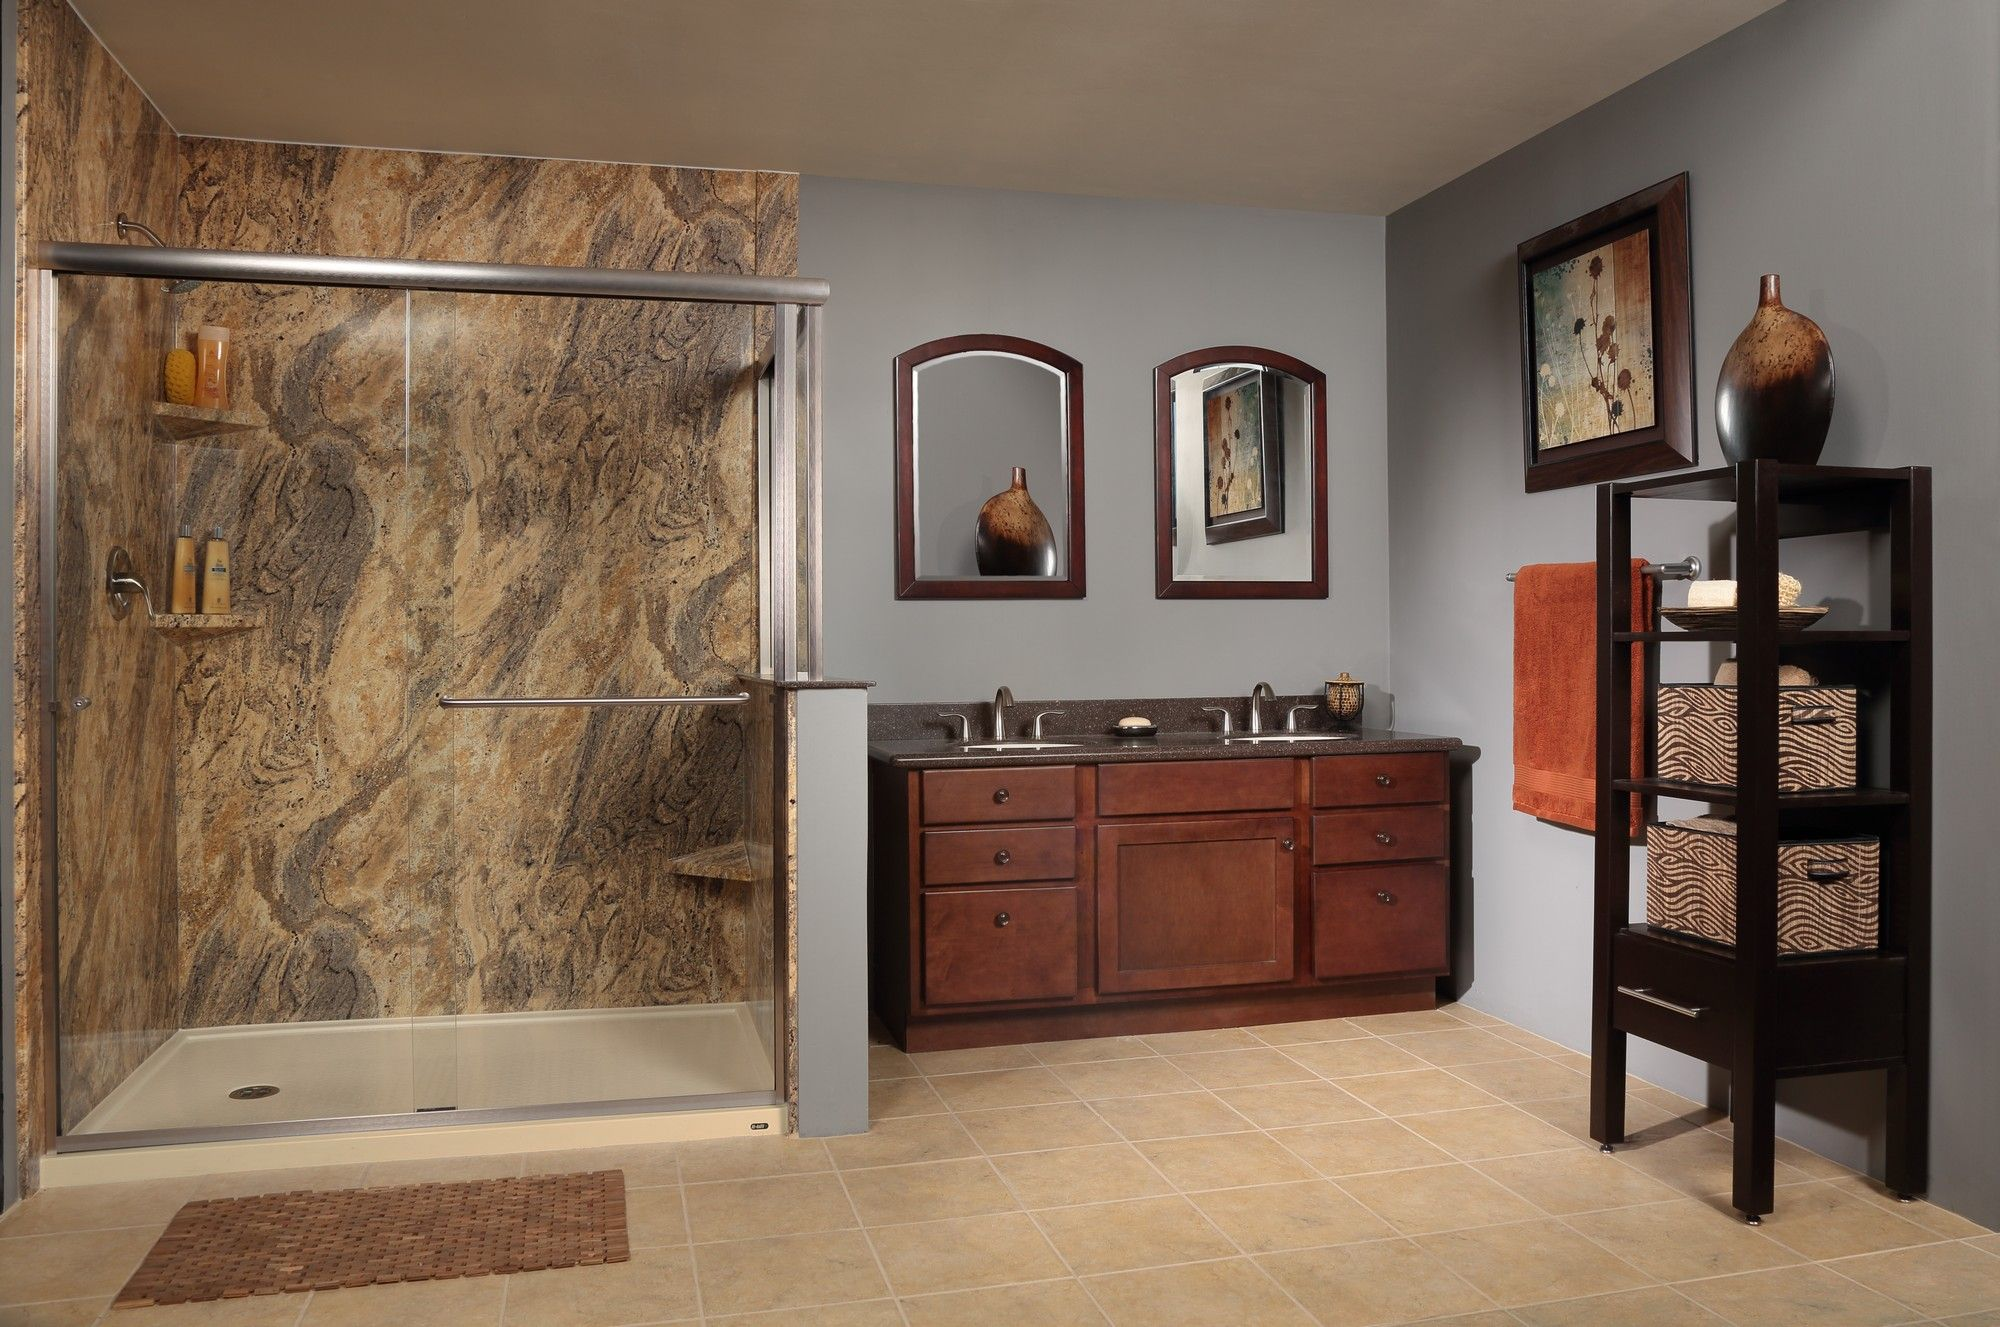 re bath low threshold shower base with adara granite wall surround re bath low threshold shower base with adara granite wall surround system learn more